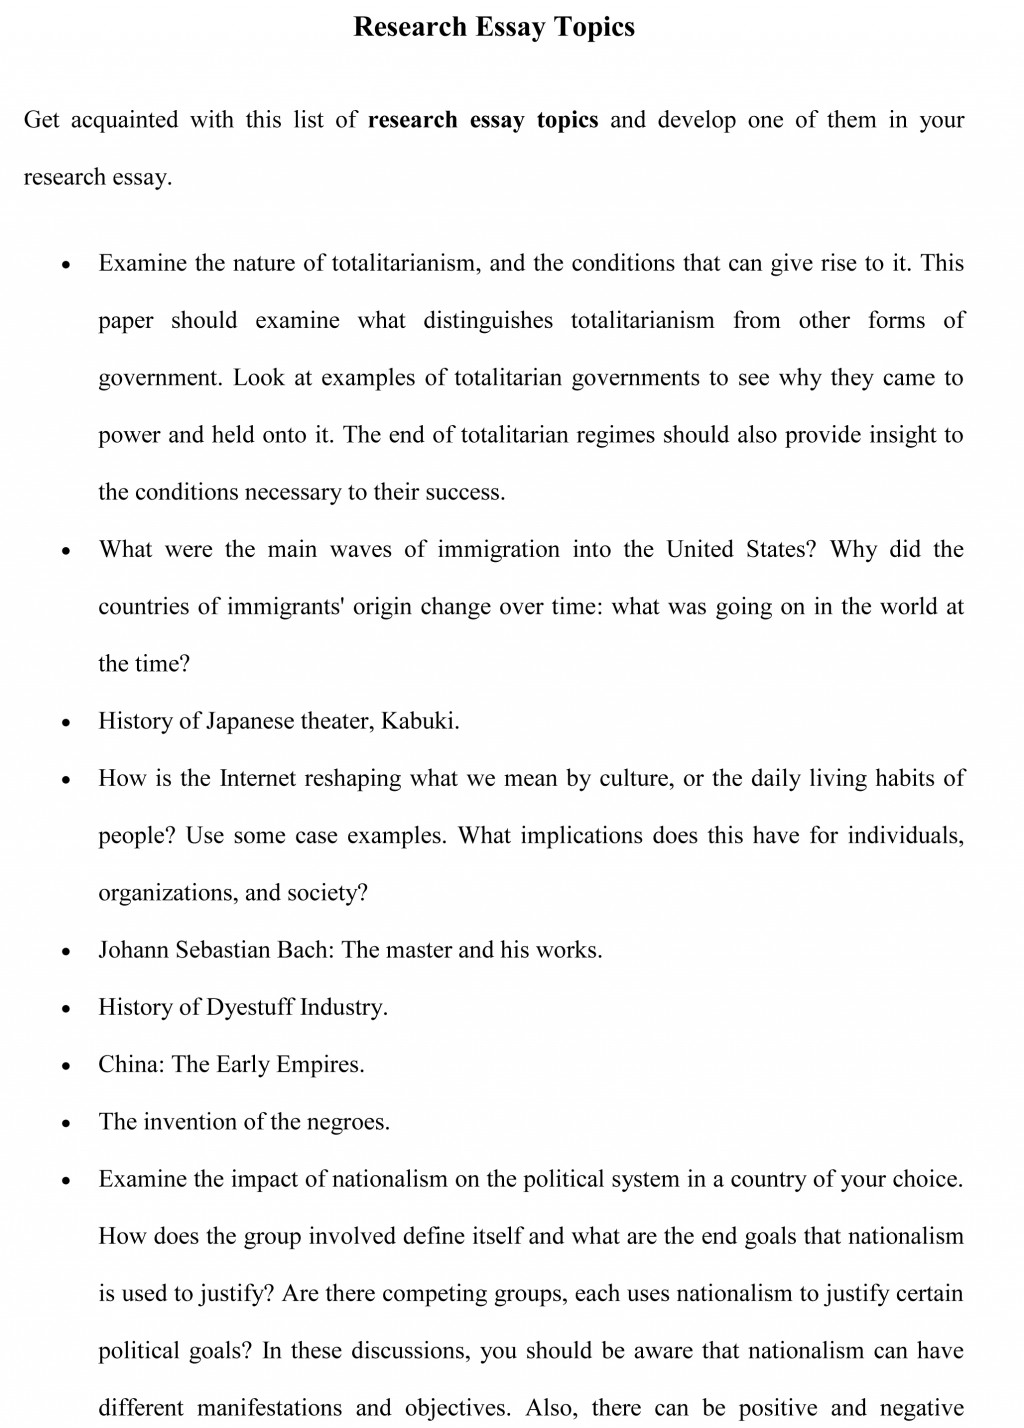 002 Research Paper Anthropology Of Religion Topics Essay Fearsome Large